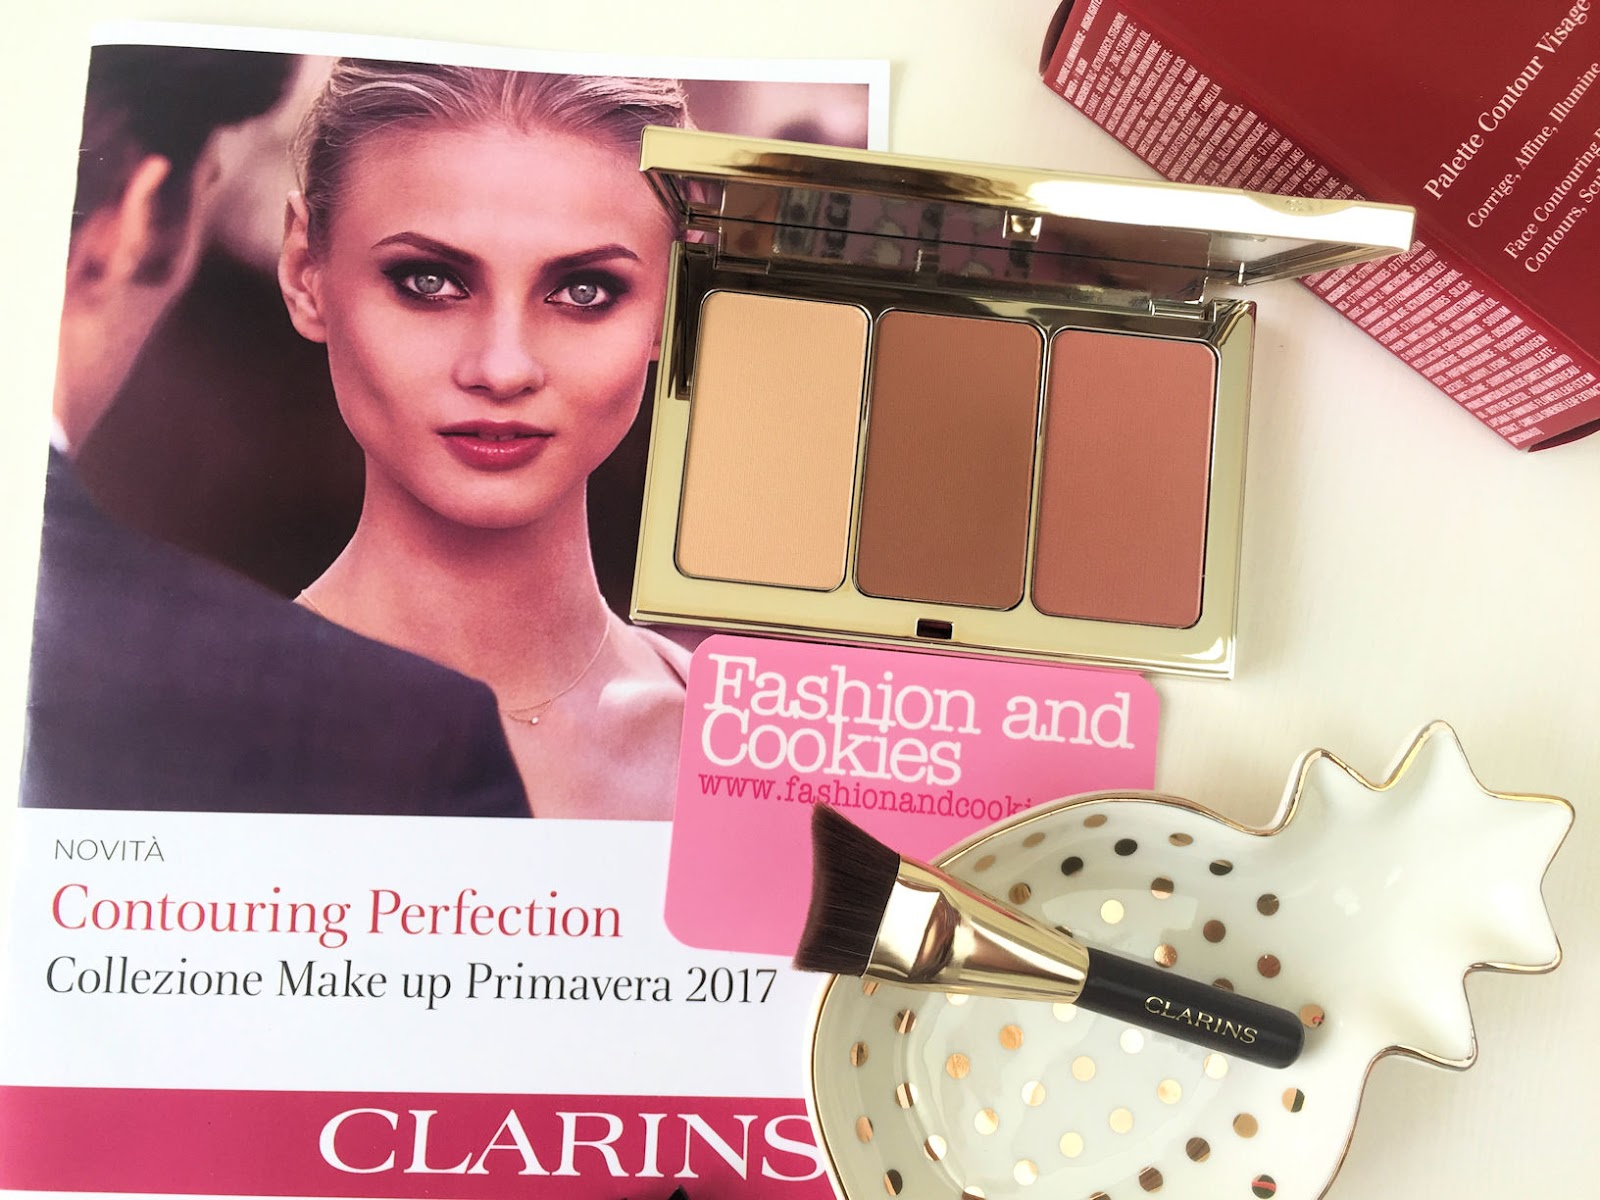 Clarins Contouring Perfection makeup Primavera 2017 review su Fashion and Cookies beauty blog, beauty blogger